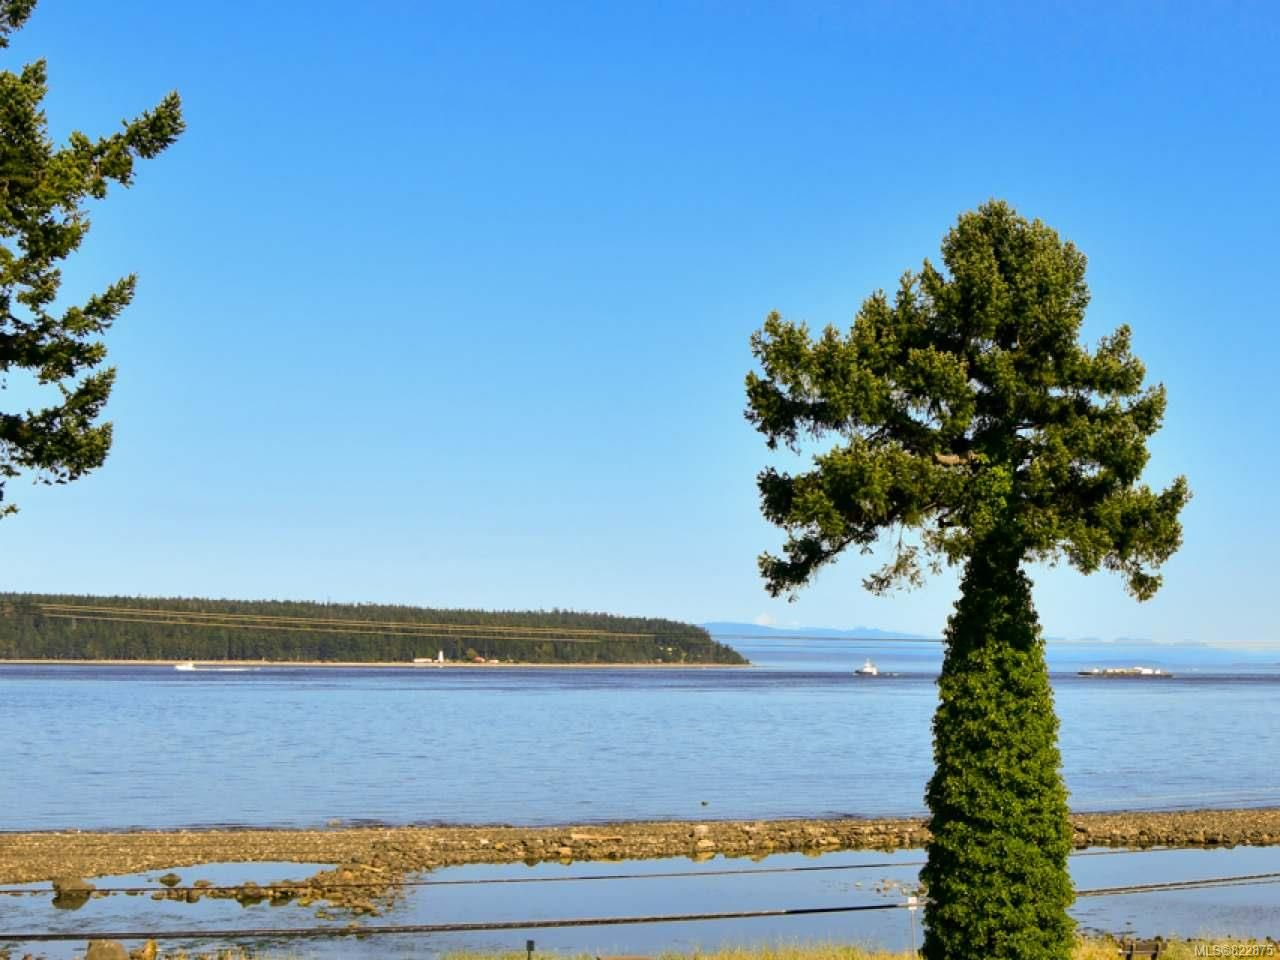 Main Photo: 405A 650 S Island Hwy in CAMPBELL RIVER: CR Campbell River Central Condo for sale (Campbell River)  : MLS®# 822875